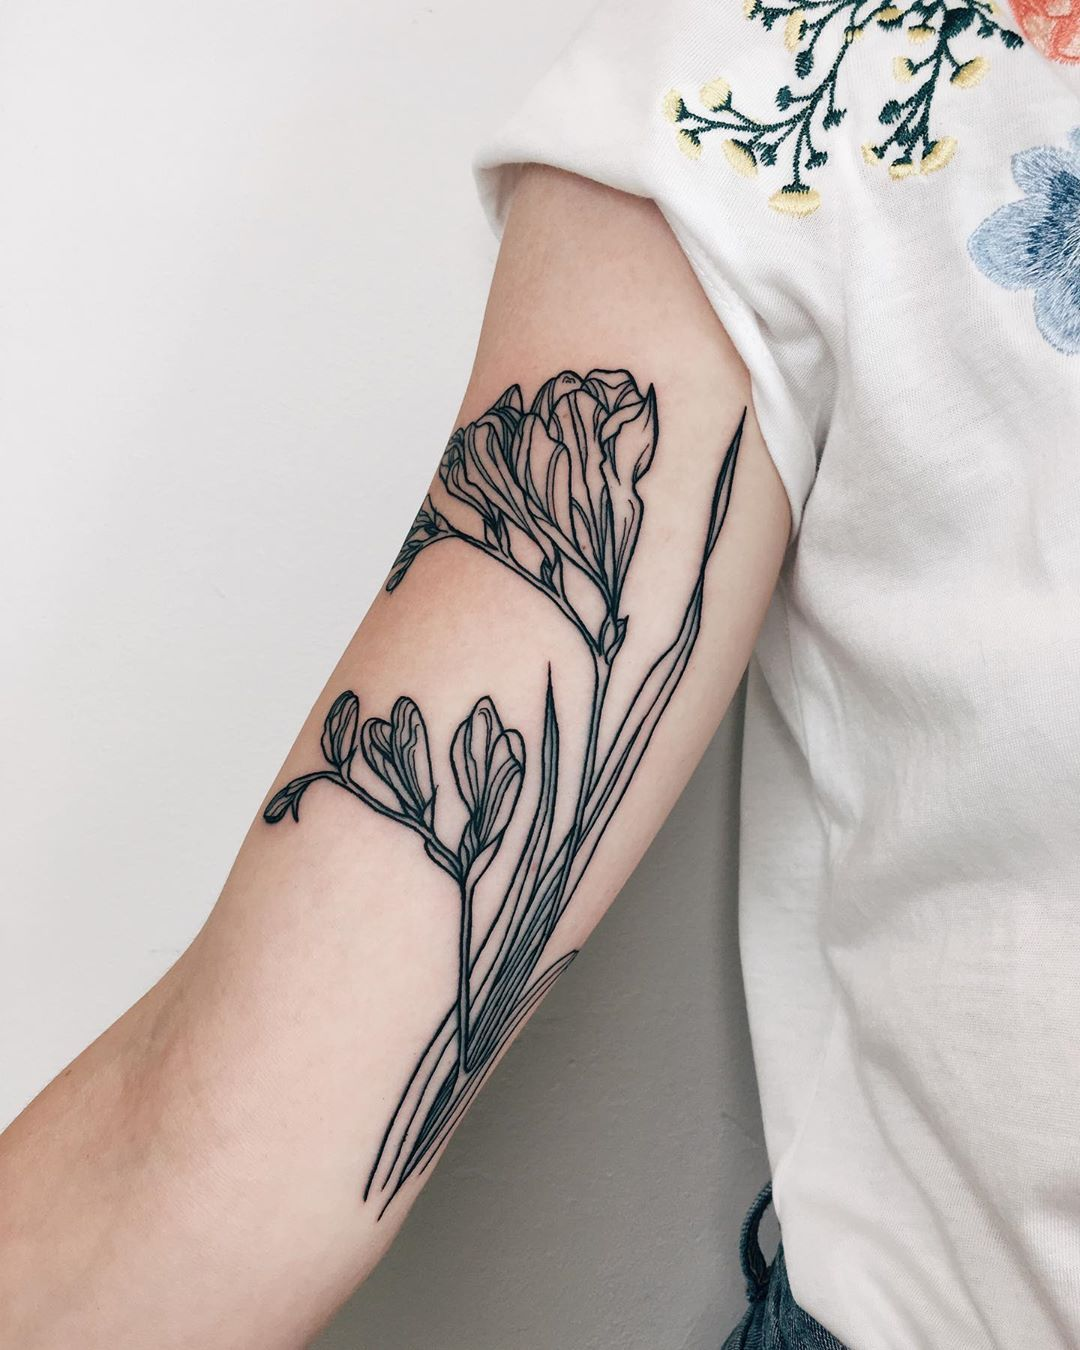 """Freesia Flower Tattoo : freesia, flower, tattoo, 🌱Olya, Ogreb🌱🐒, Instagram:, """"Delicate, Freesia, Flowers, Marion!💓🌱, Thank, Coming, Brussels, Tat…, Tattoos,, Flowers,, Tattoos"""